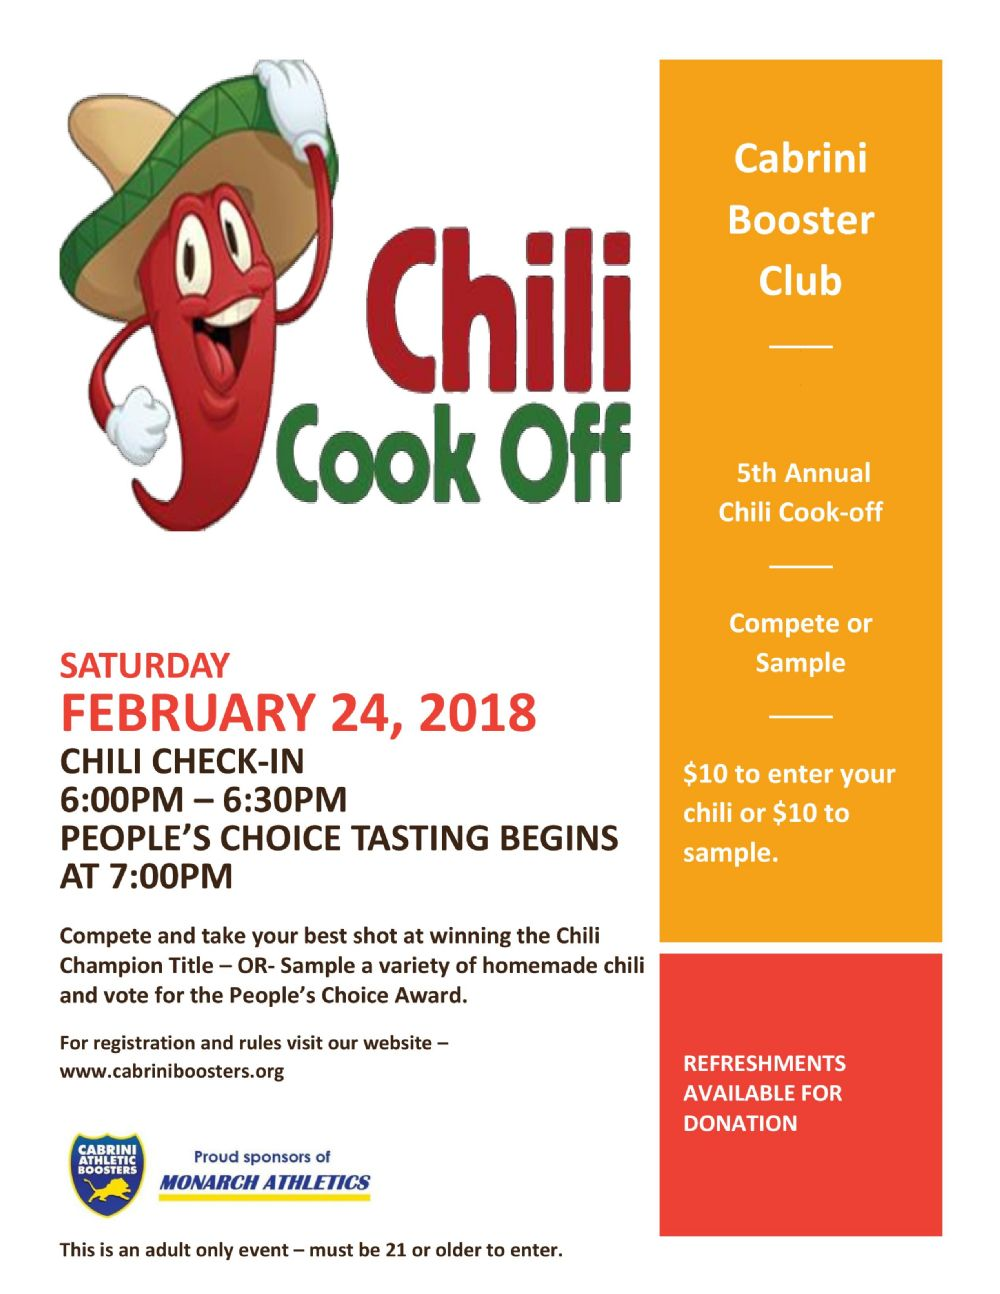 News chili cook off 2018 by cabrini athletic boosters posted 01312018 xflitez Choice Image